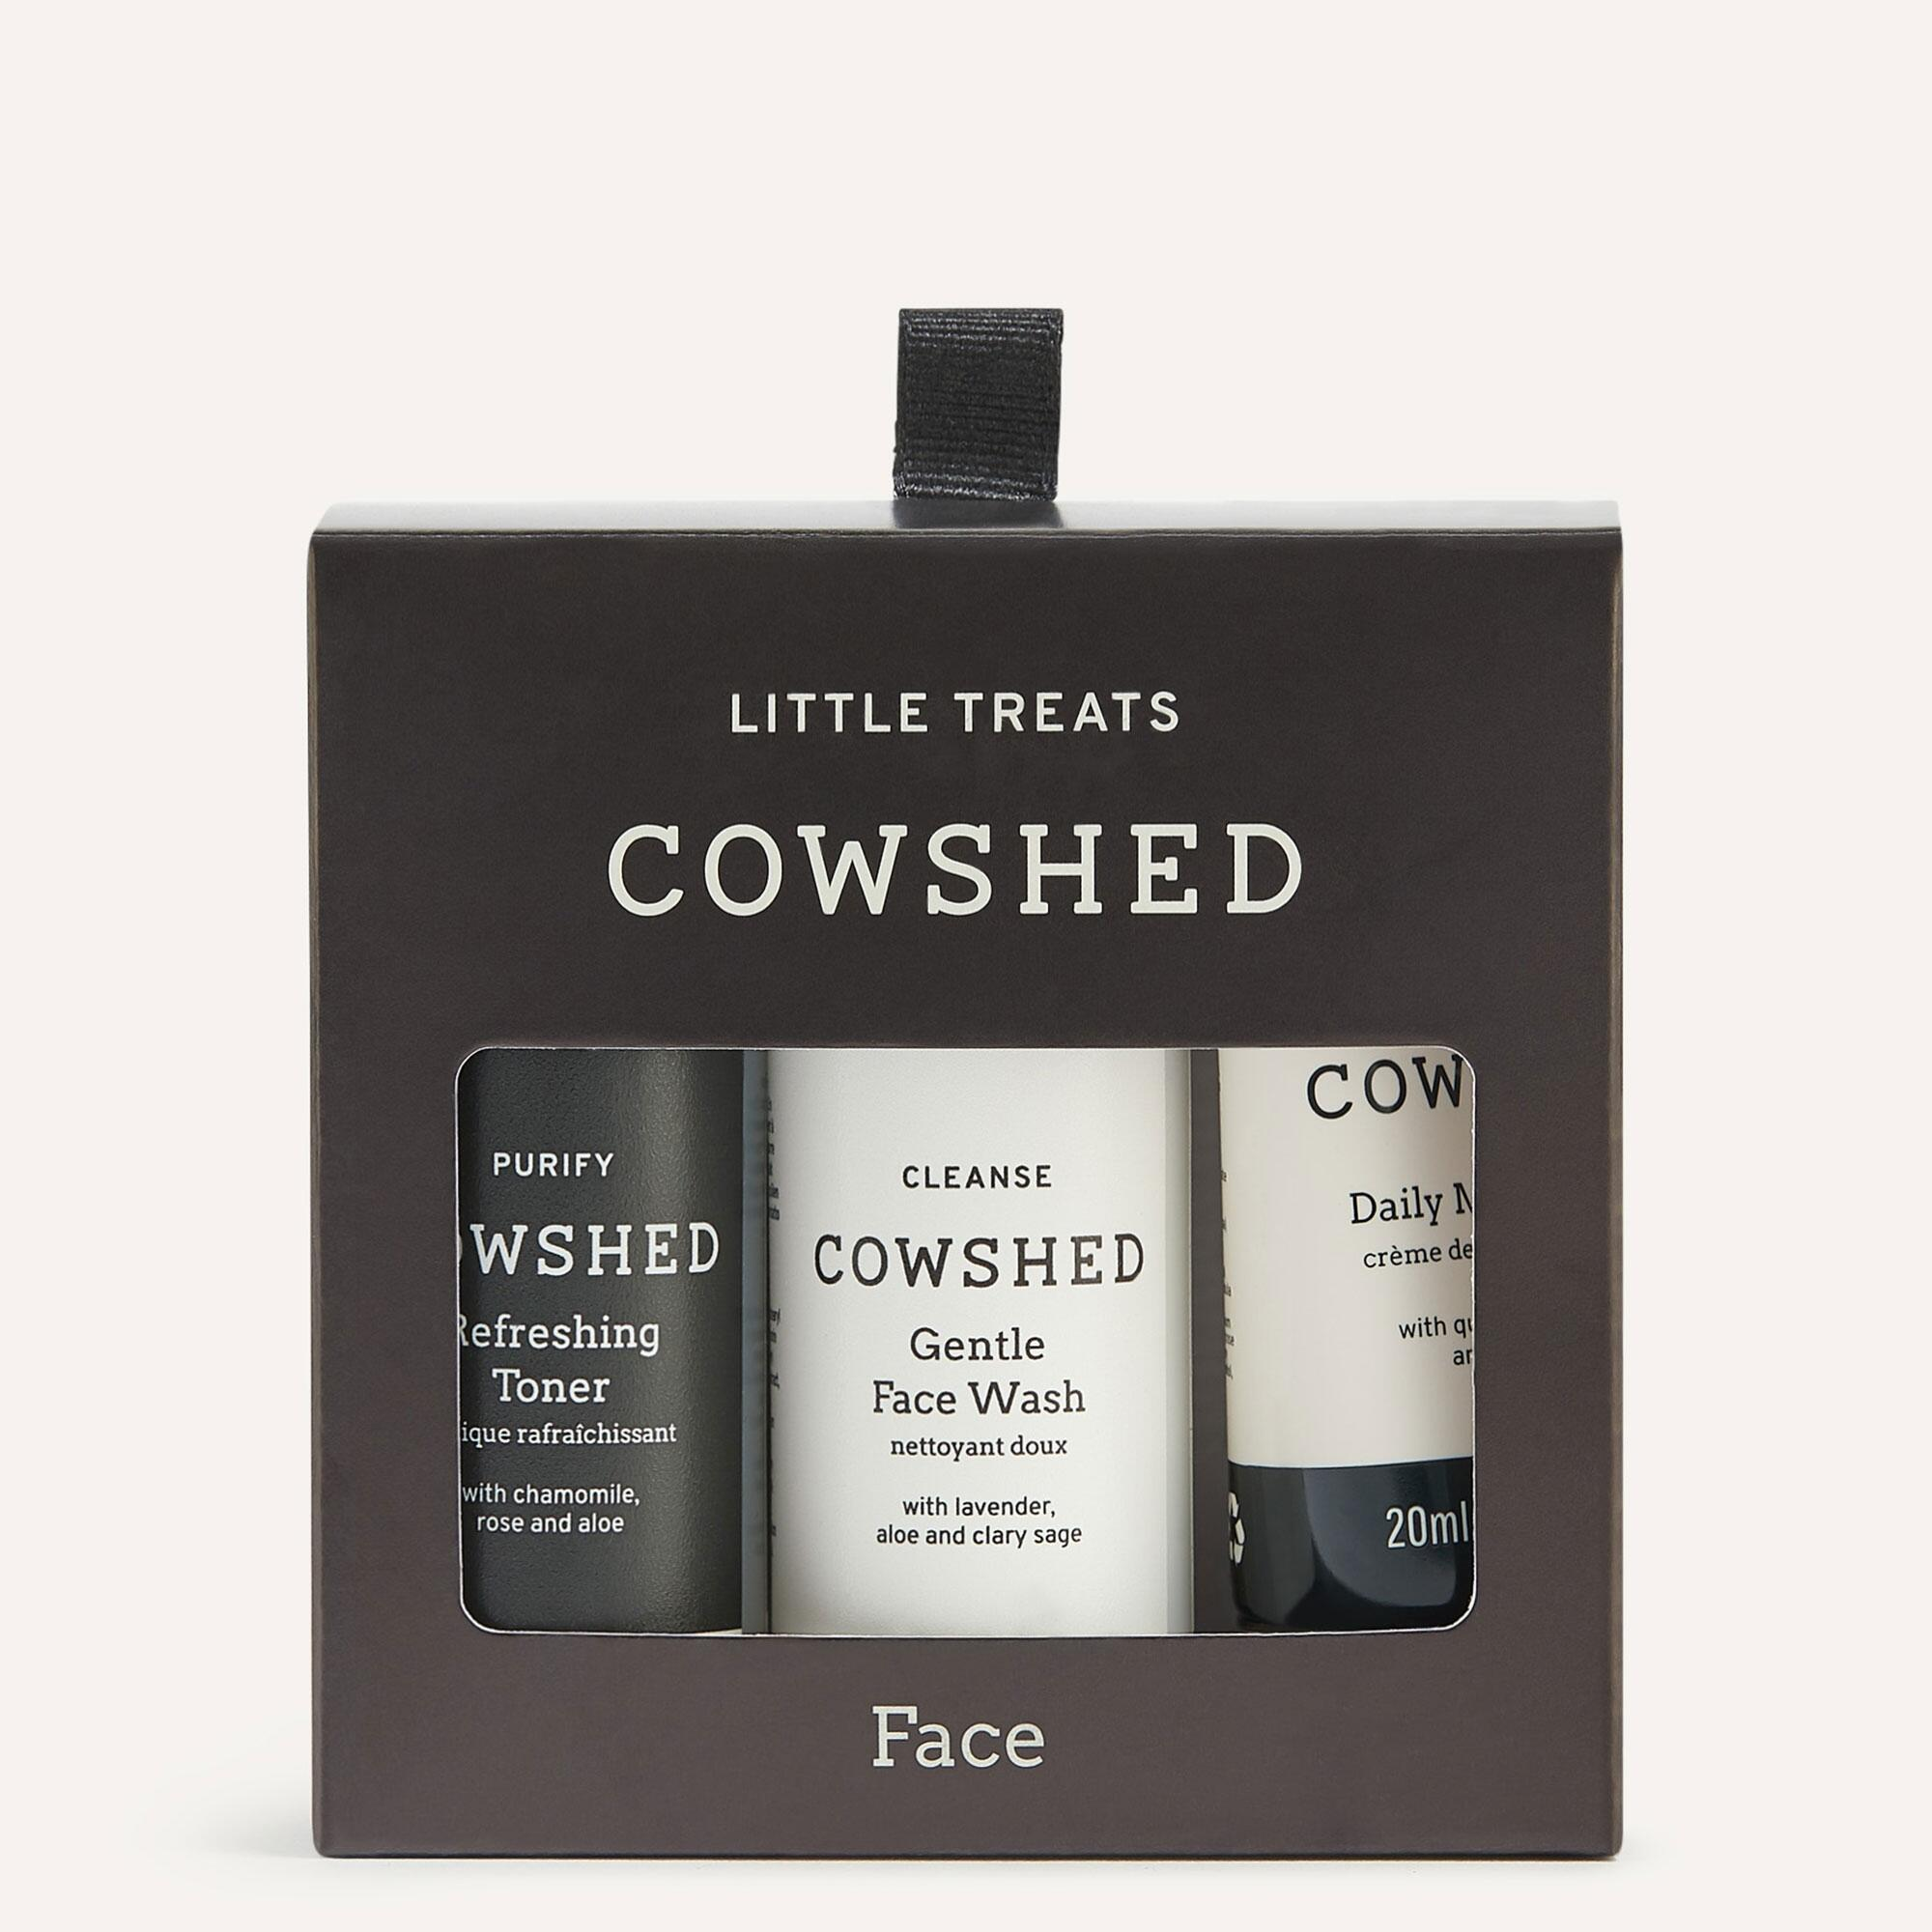 COWSHED LITTLE TREATS - FACE